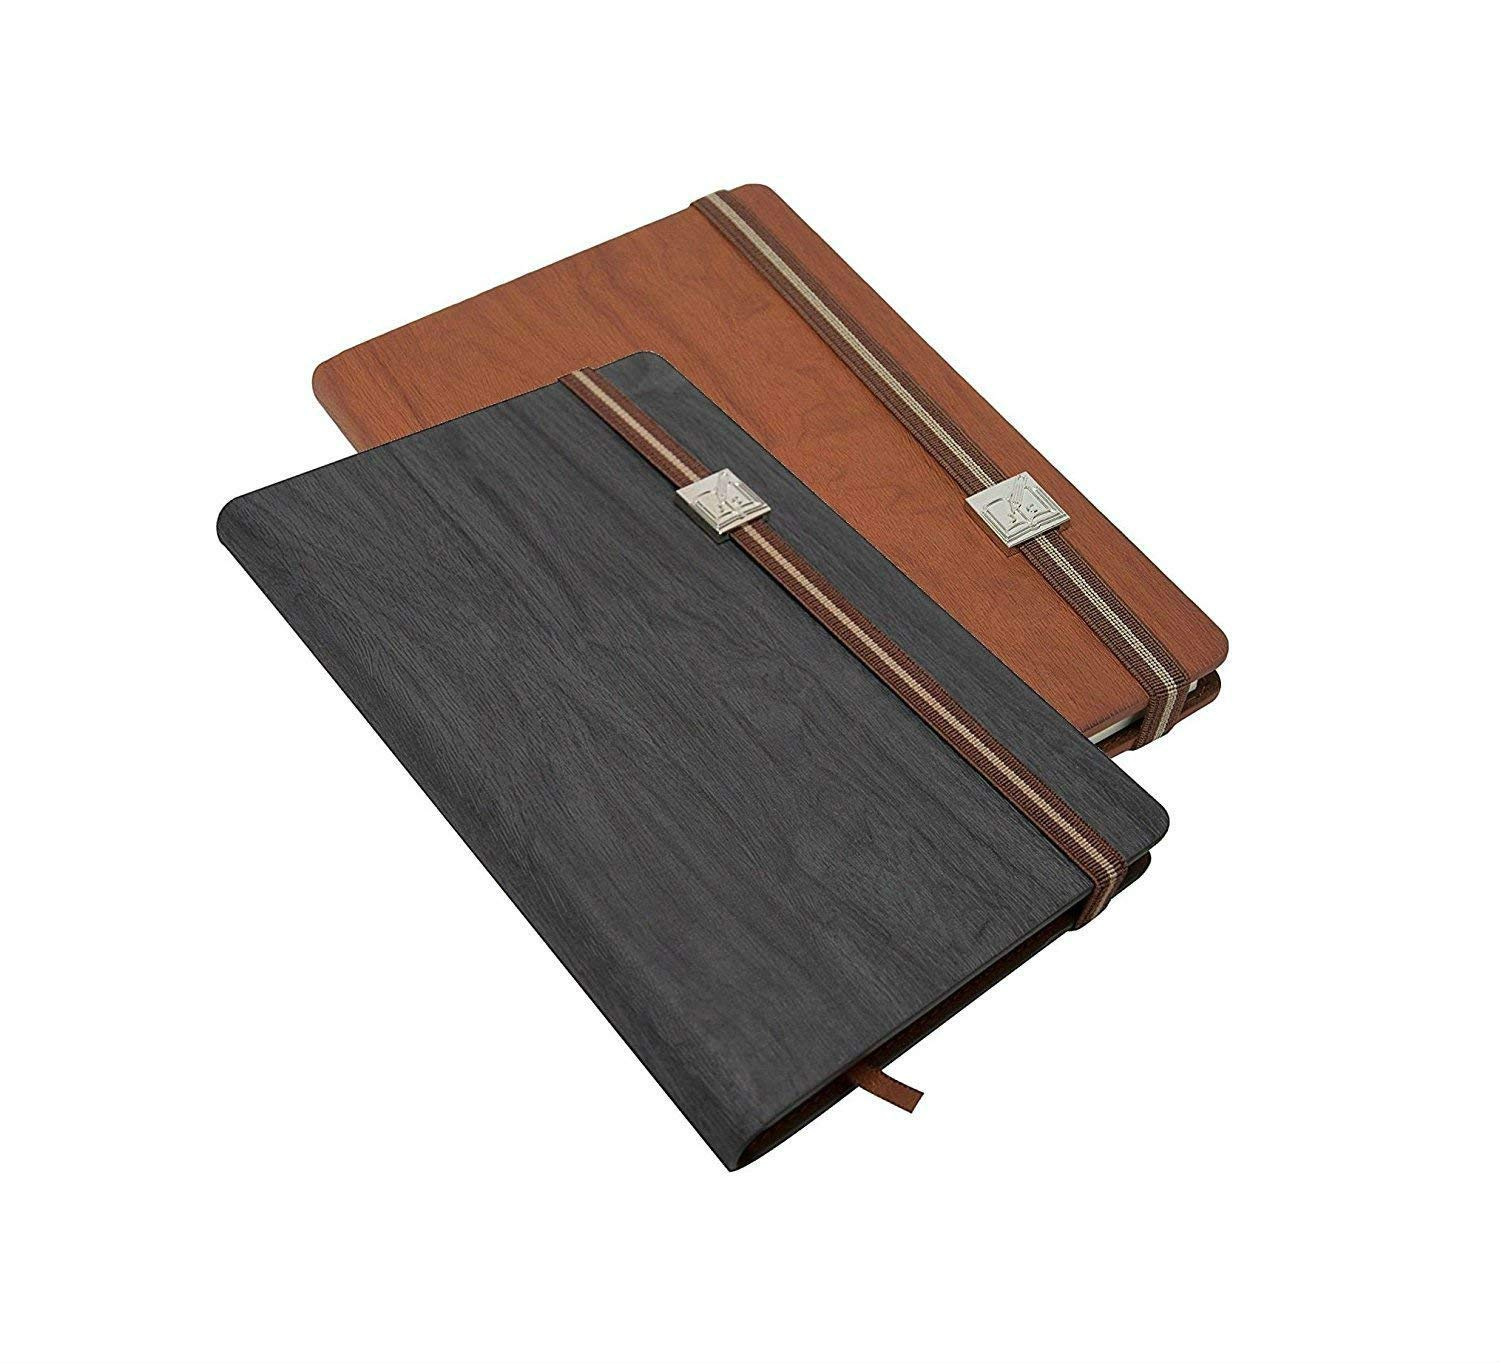 2 Pack Wood Grain Travel Journal (Black/Brown Set) 5 x 8 Inch Paper Notebook Writing Pad